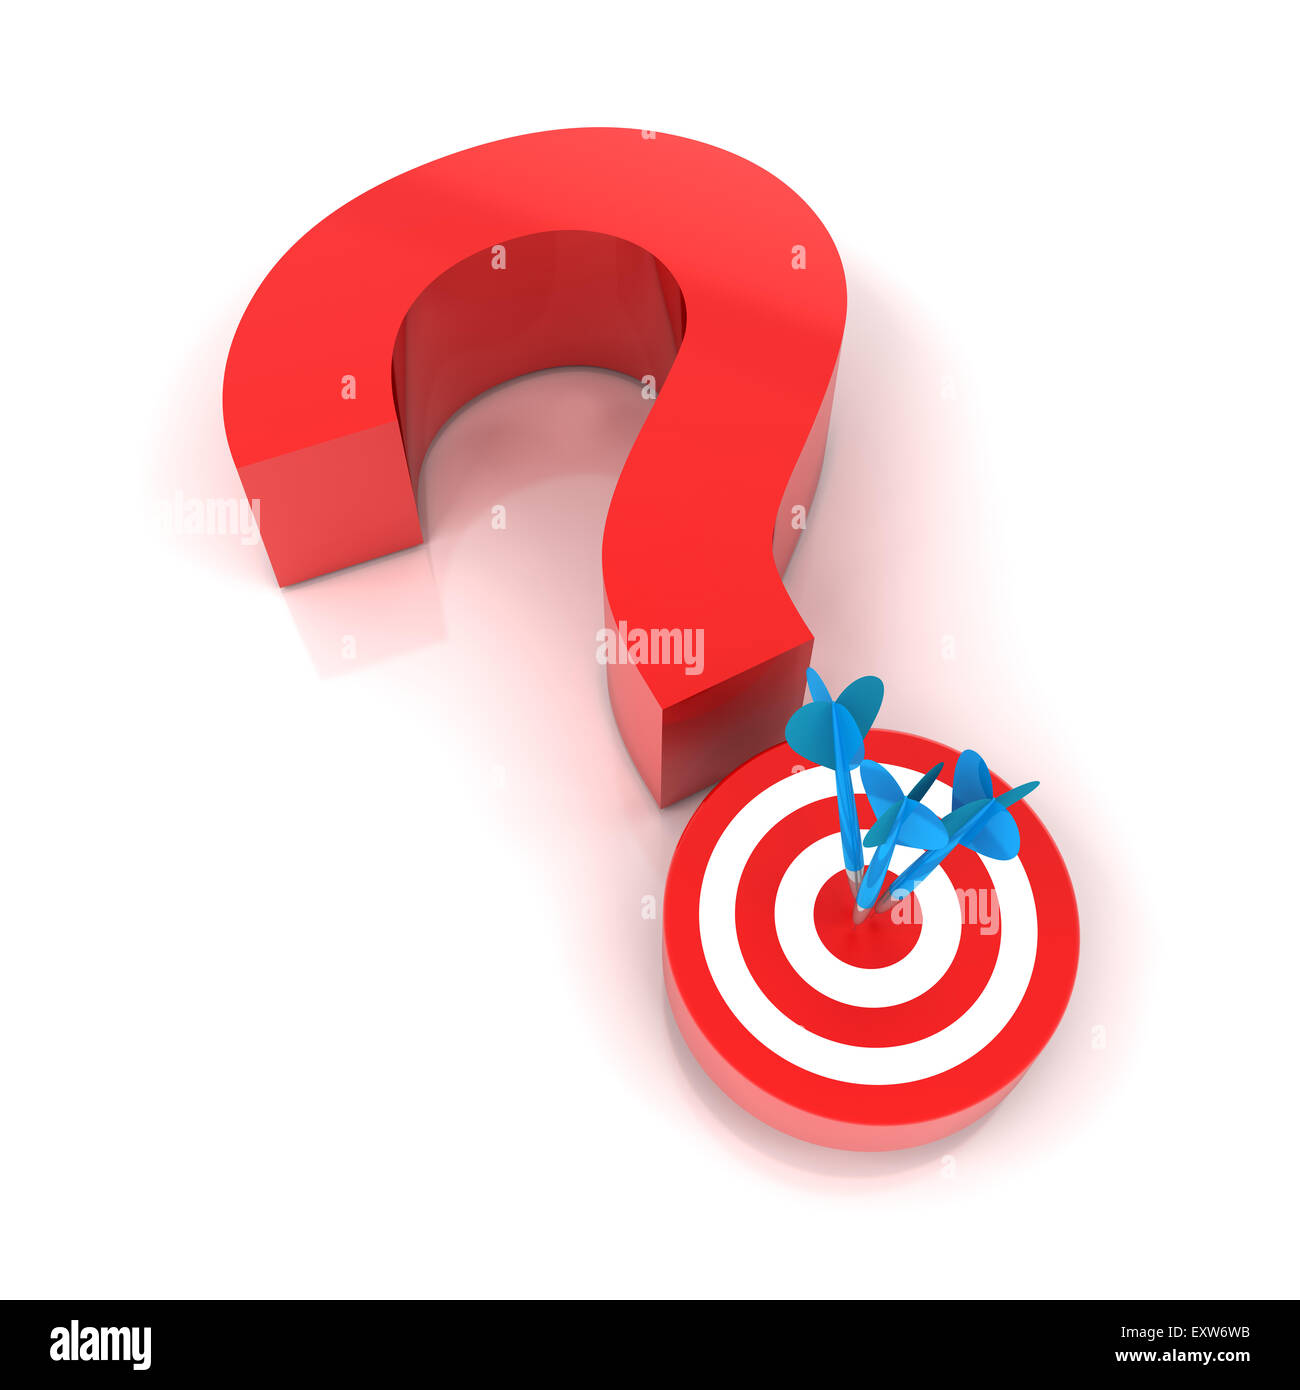 Question mark and target stock photo royalty free image 85376743 question mark and target buycottarizona Image collections